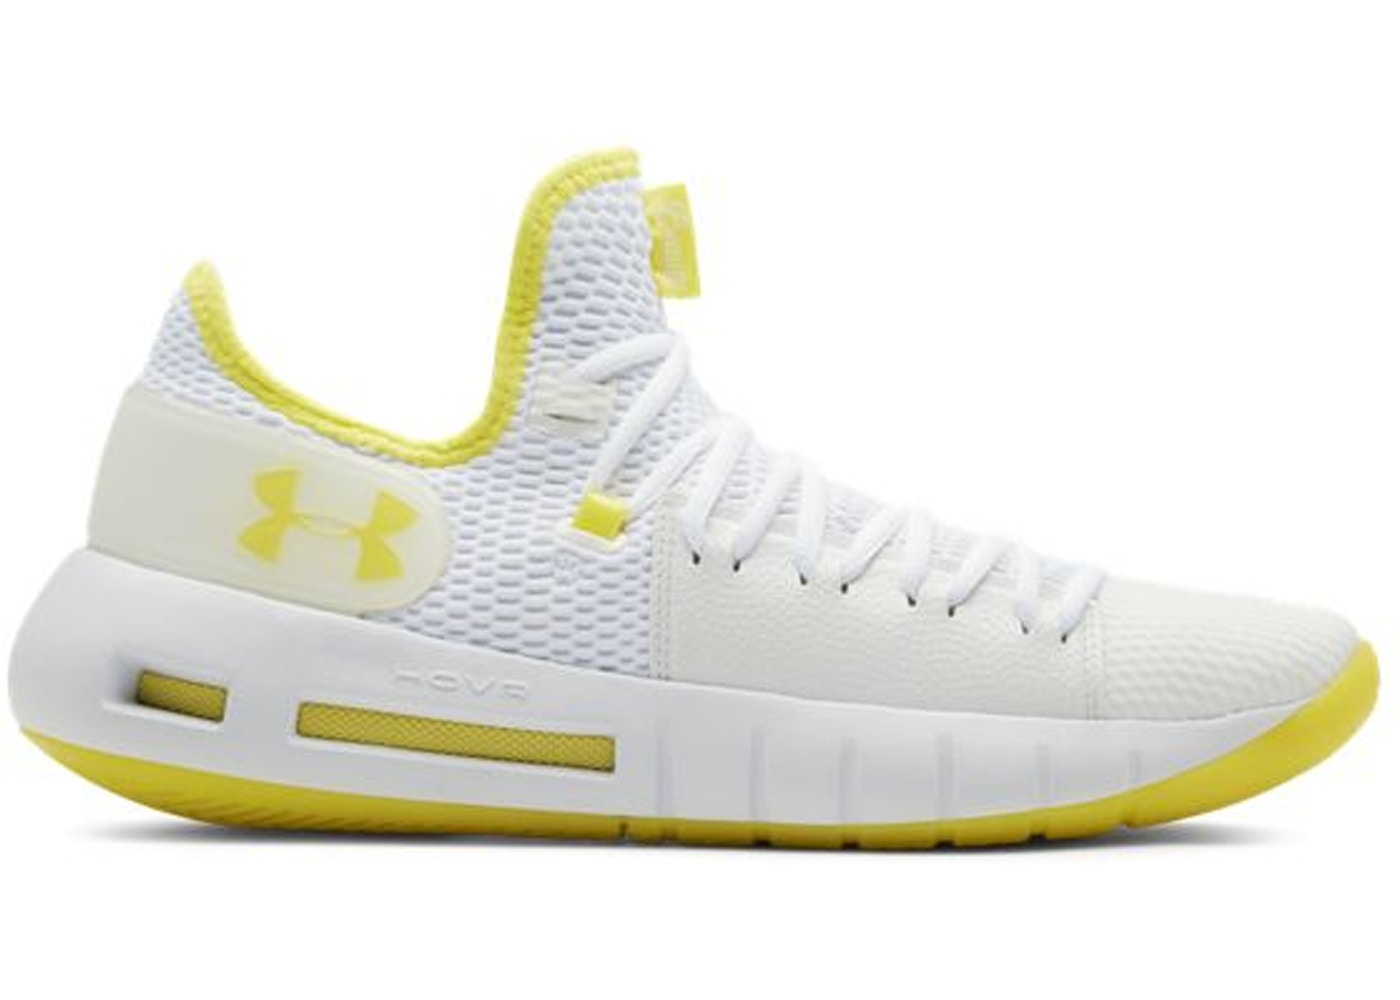 finest selection 3f41f 66511 Under Armour Hovr Havoc Low White Lemon - 3021593-109